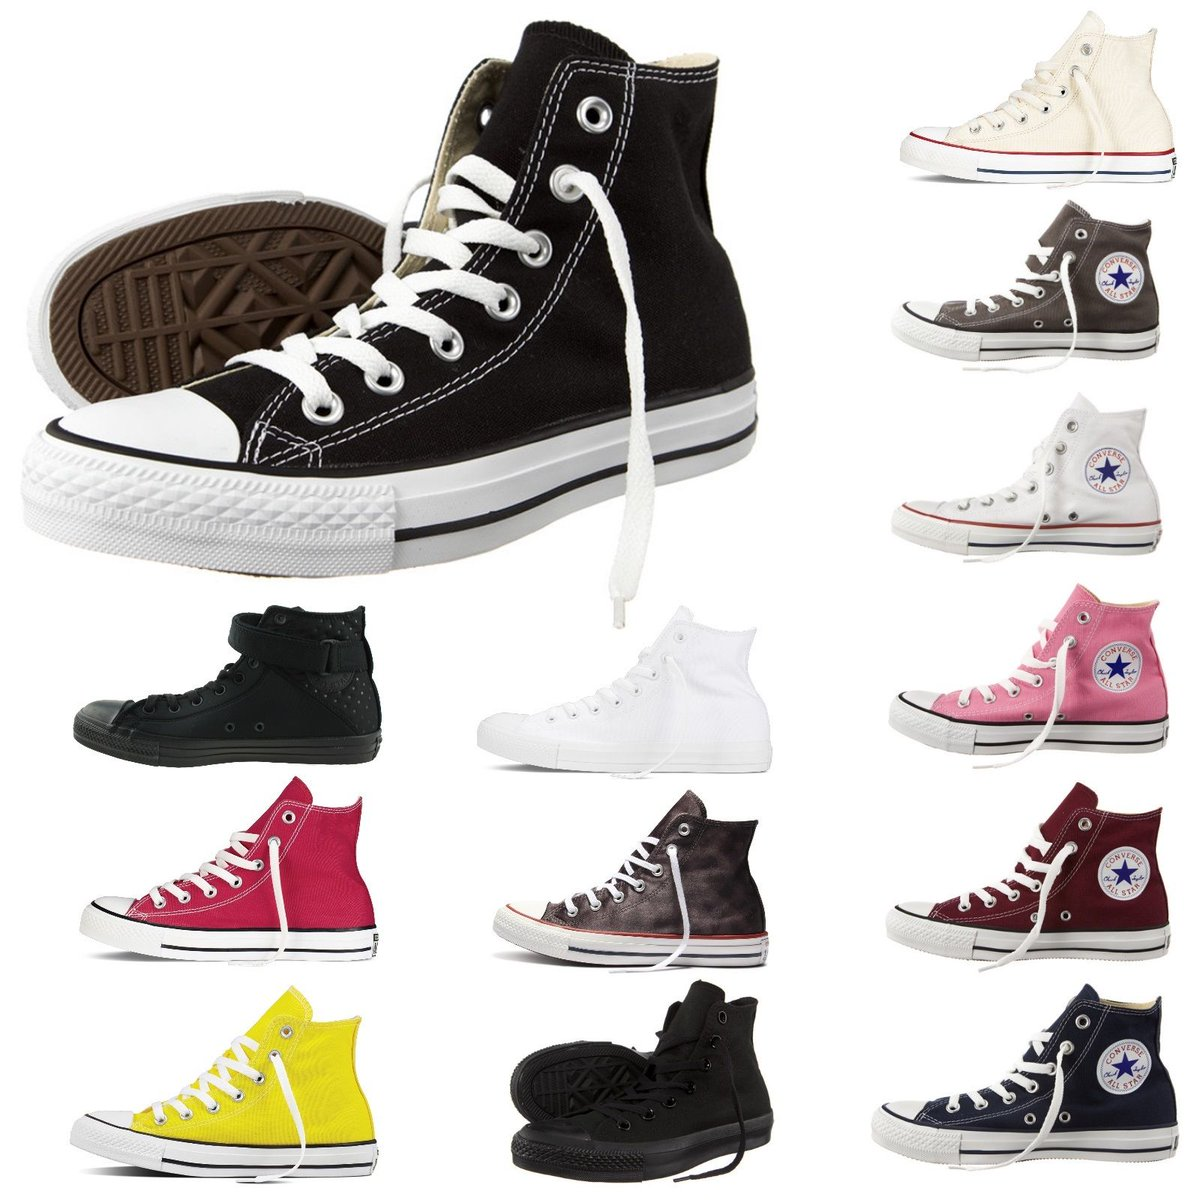 converse damen sale hashtag on Twitter